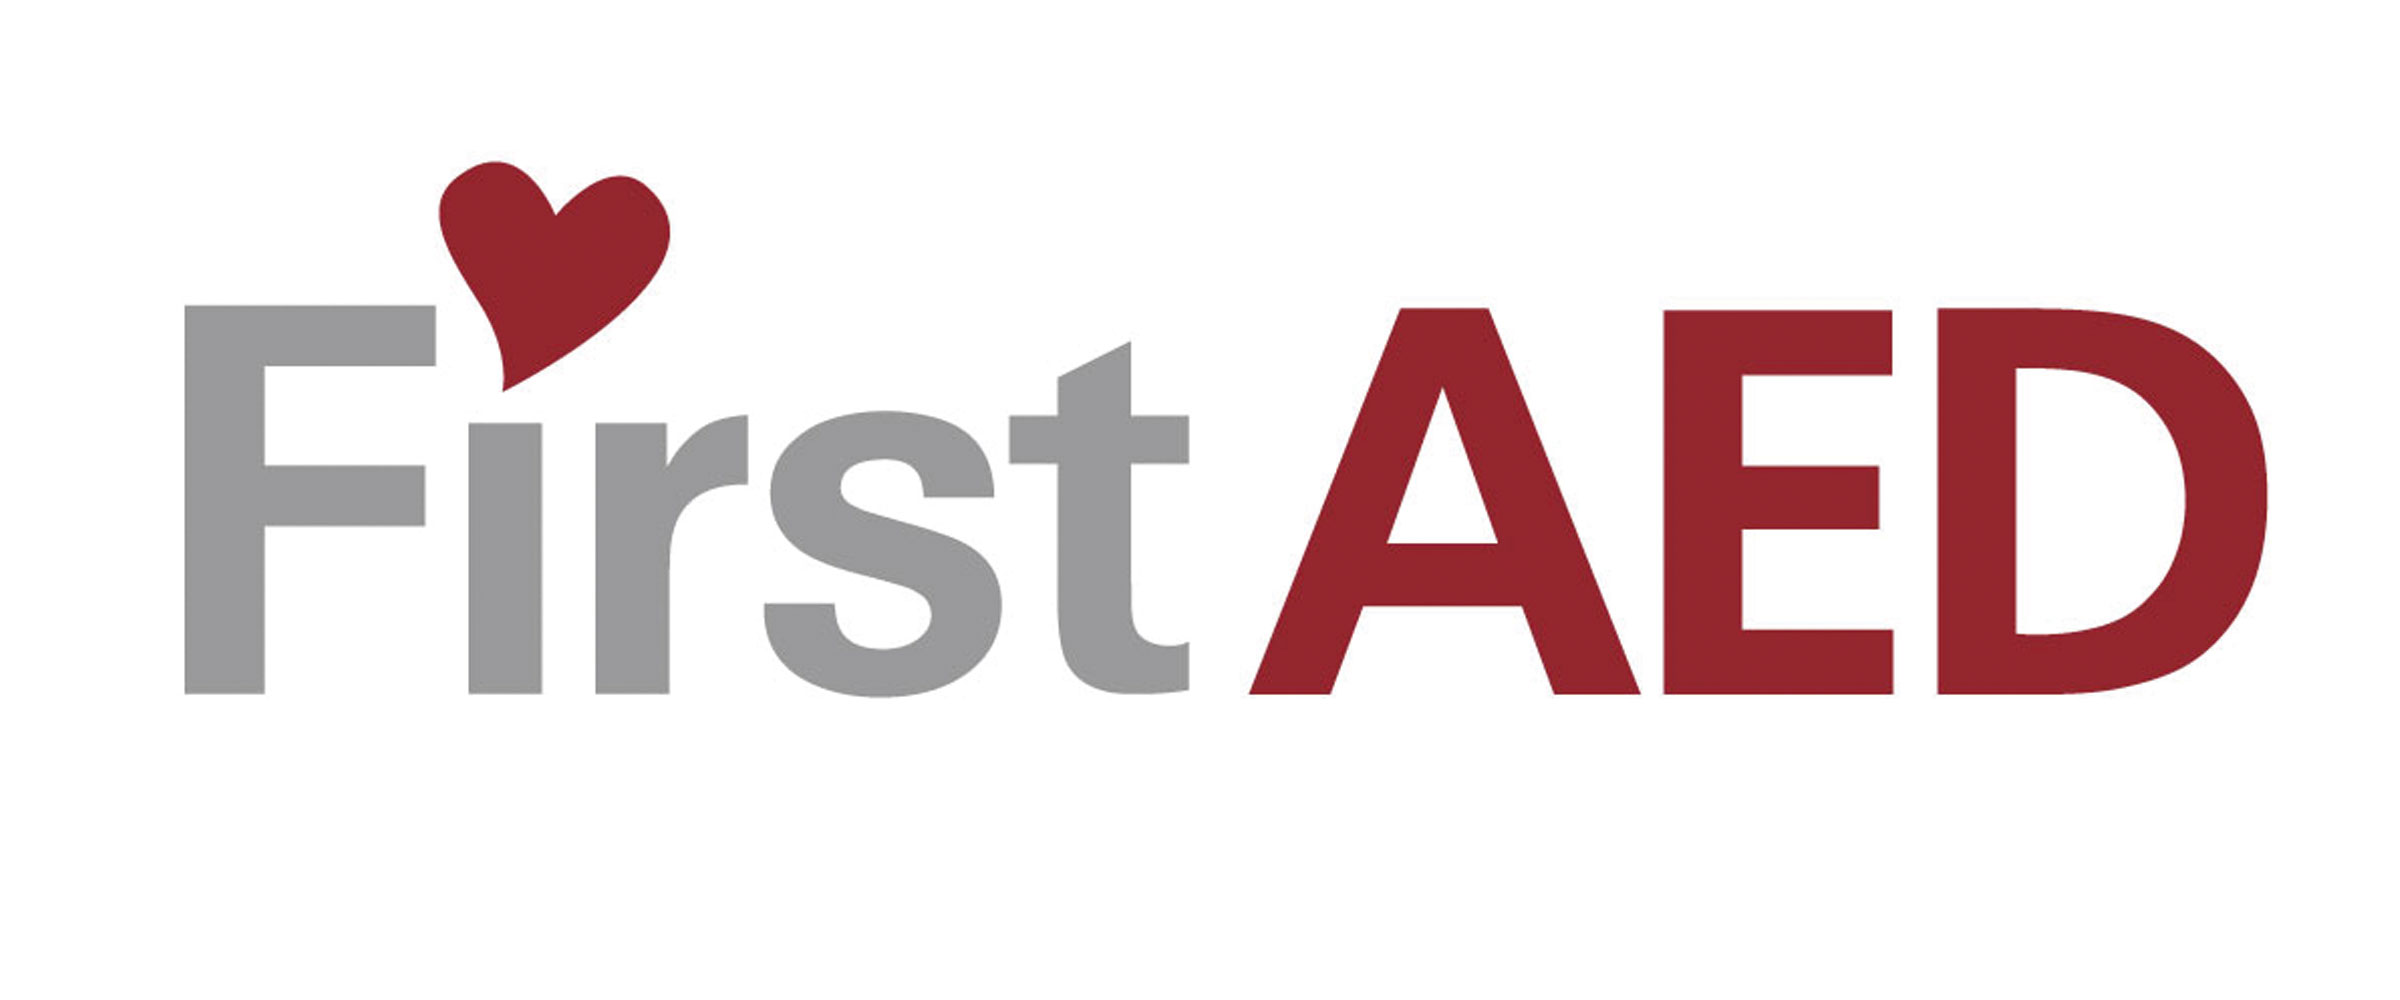 FirstAED